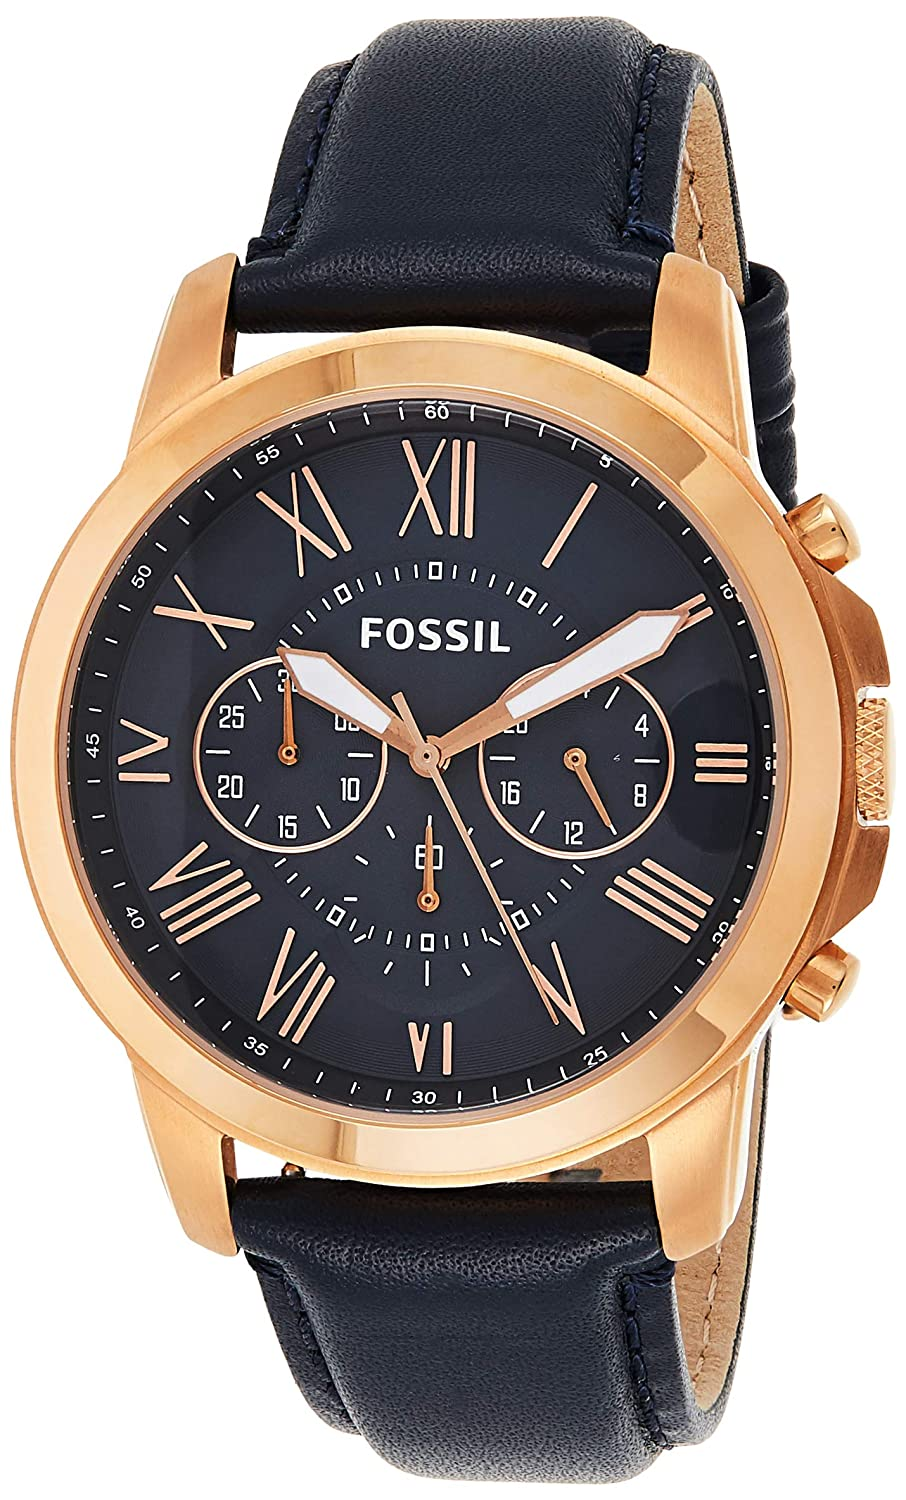 Fossil Analog FS4835 best Fossil Watch